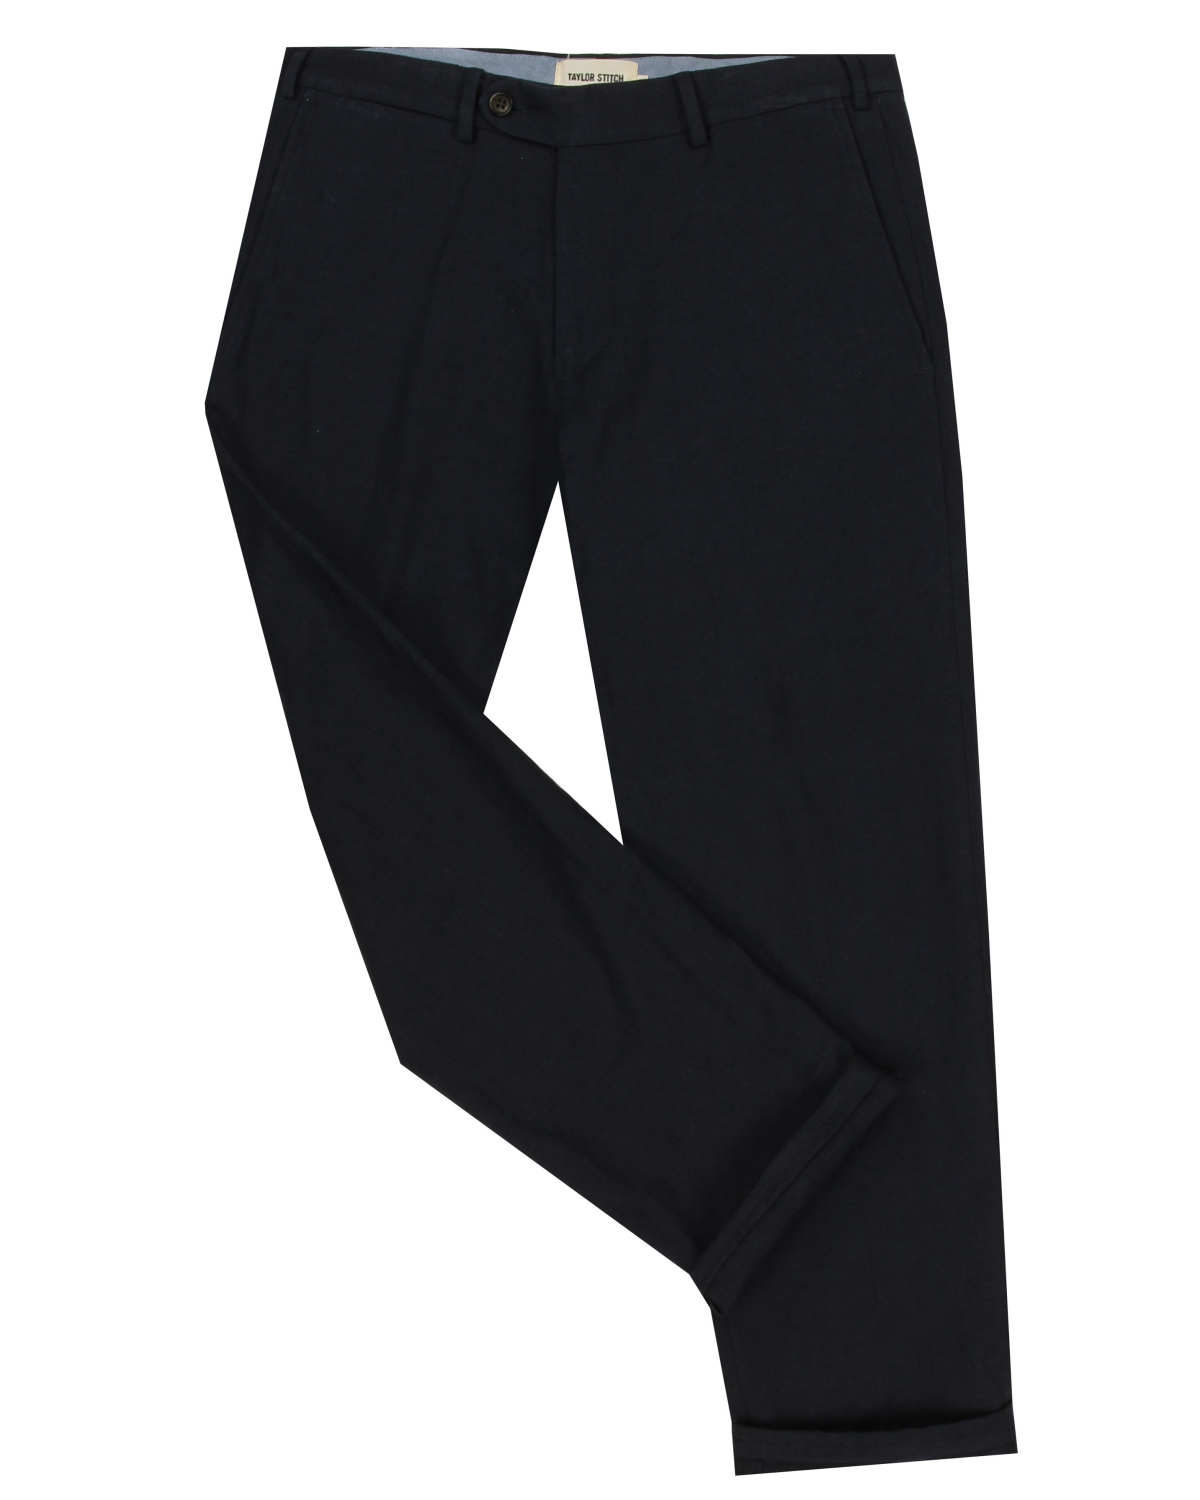 The Telegraph Trouser